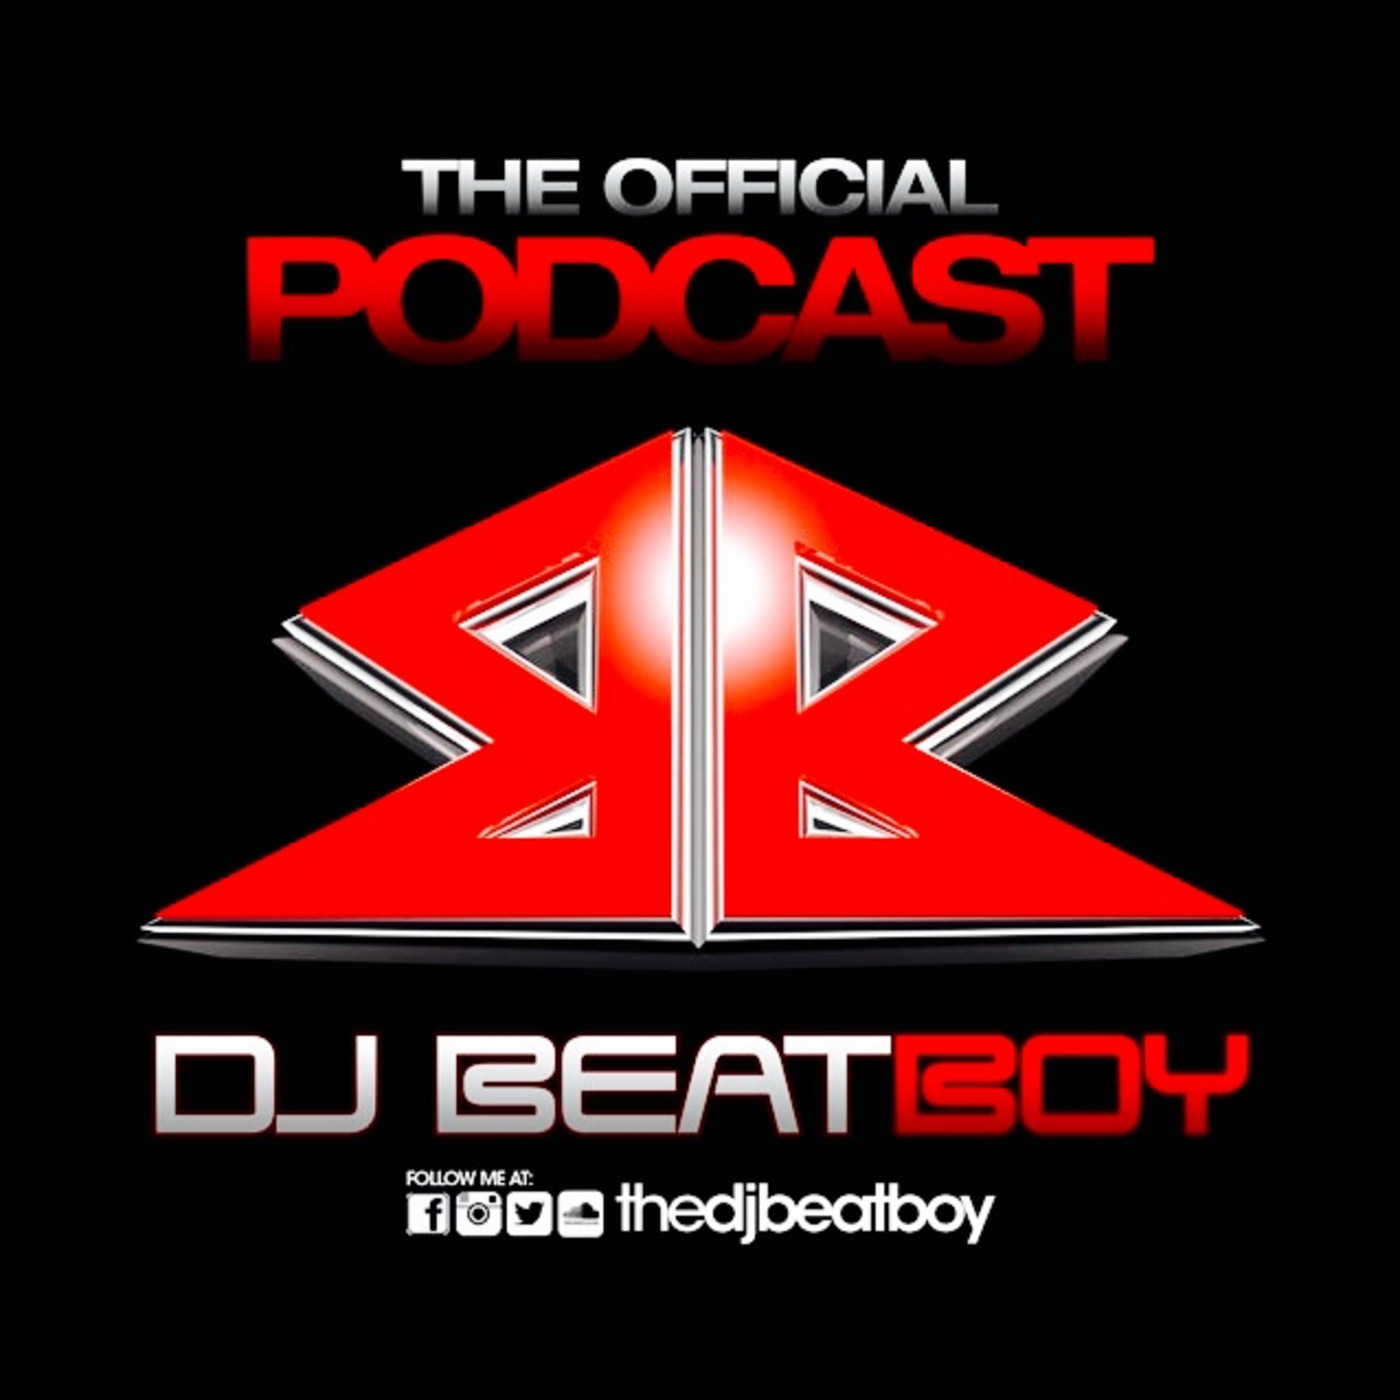 DJ BEAT BOY November Podcast